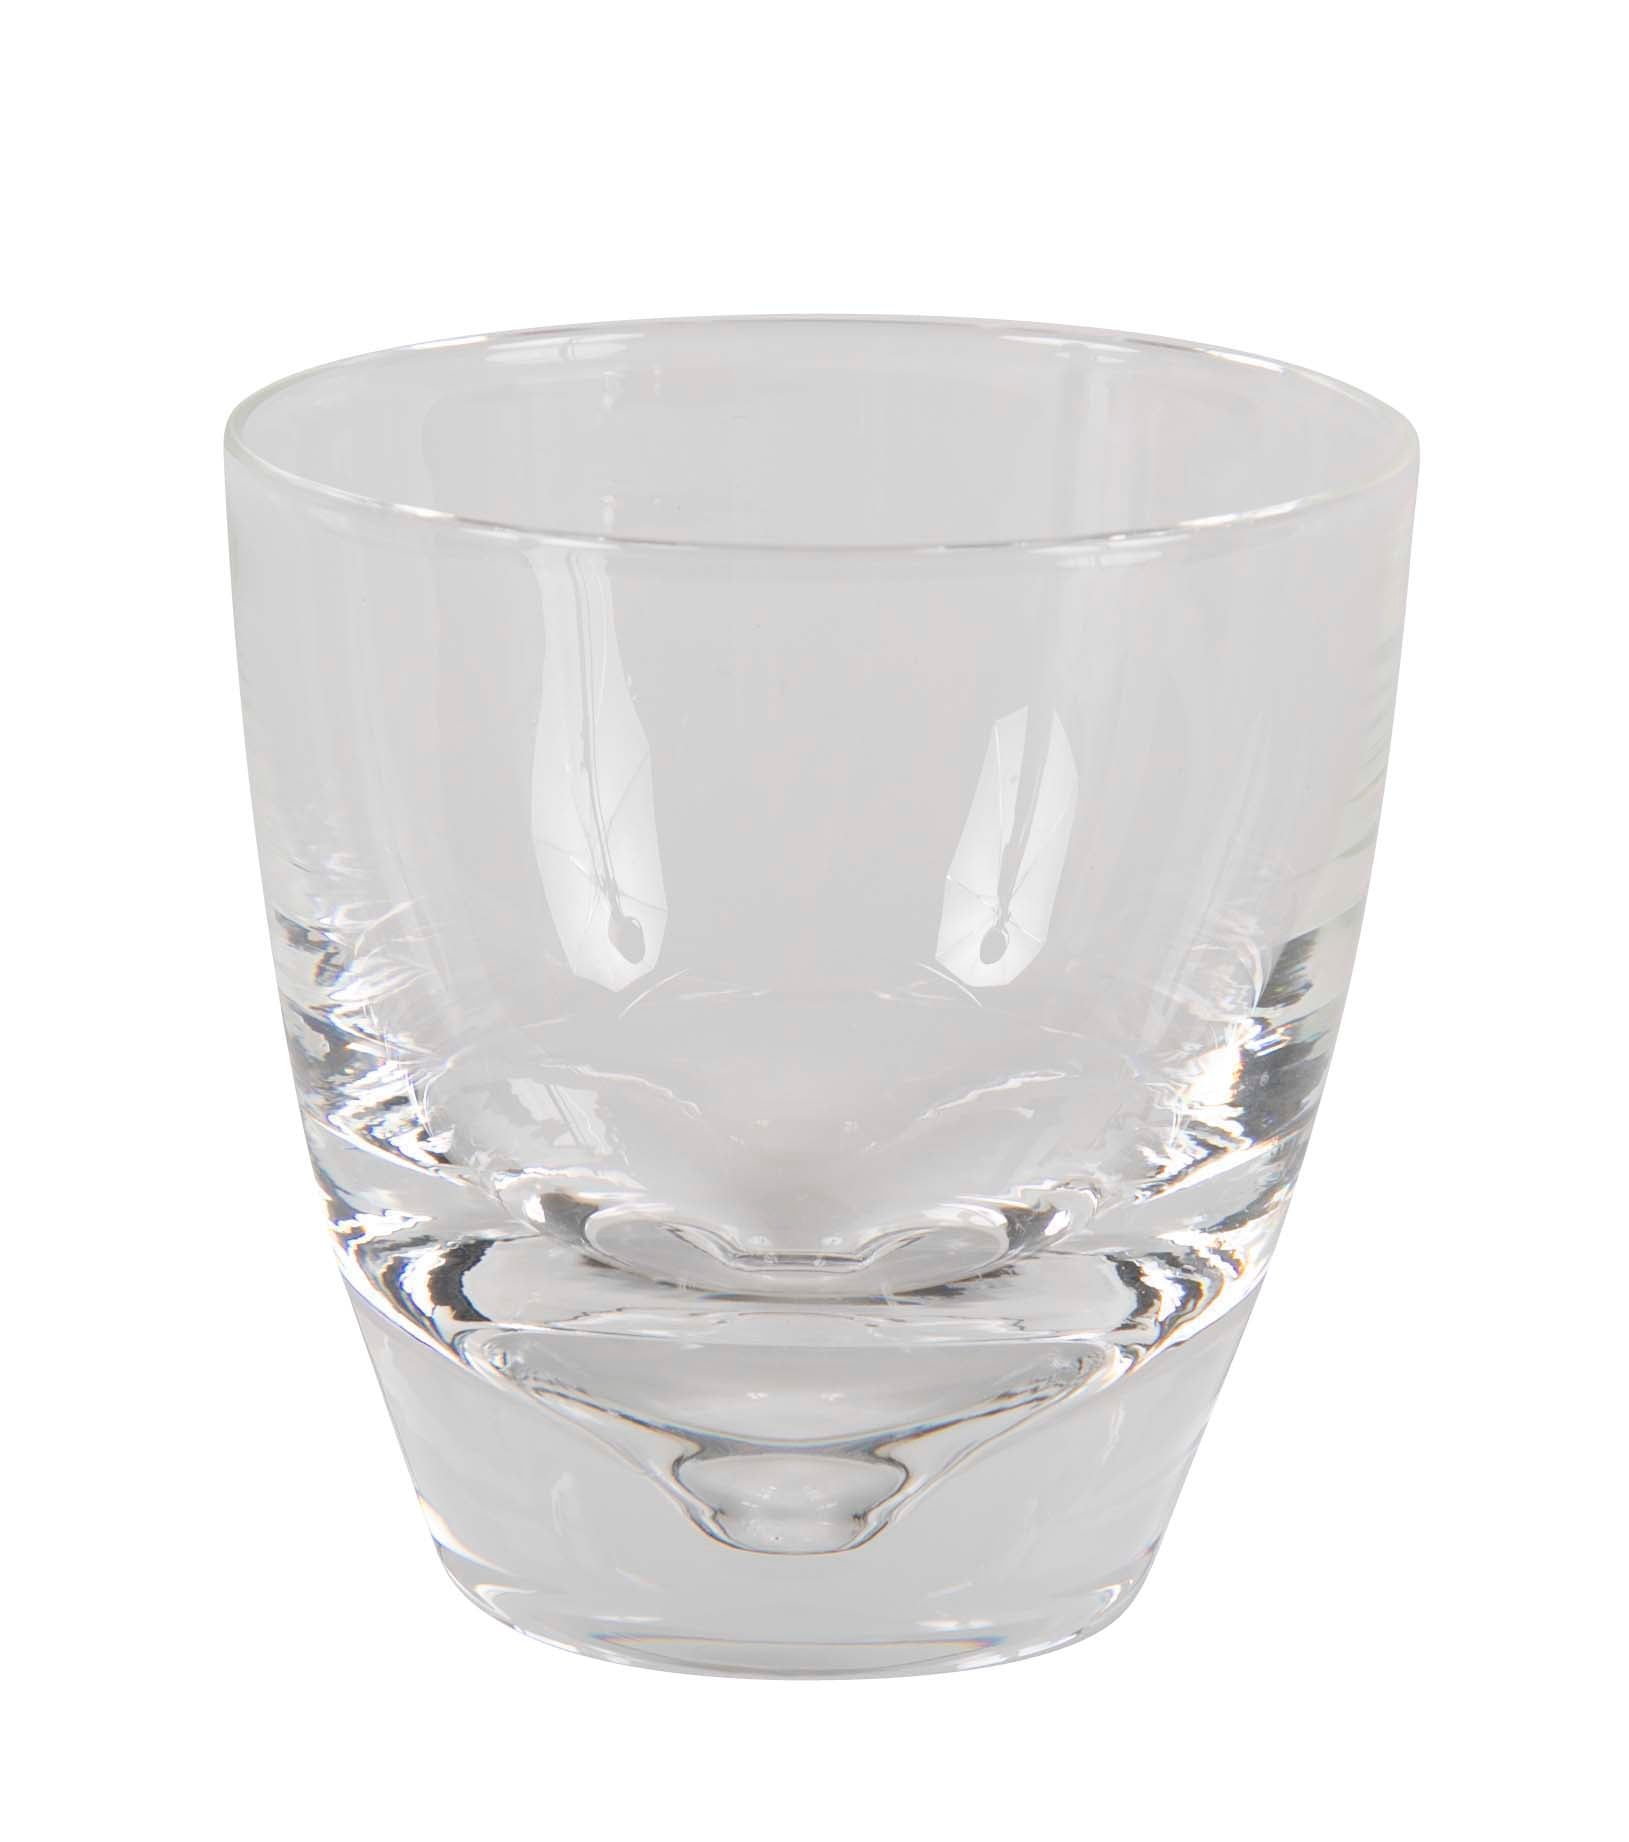 15 Steuben Old Fashion Glasses with Dimple